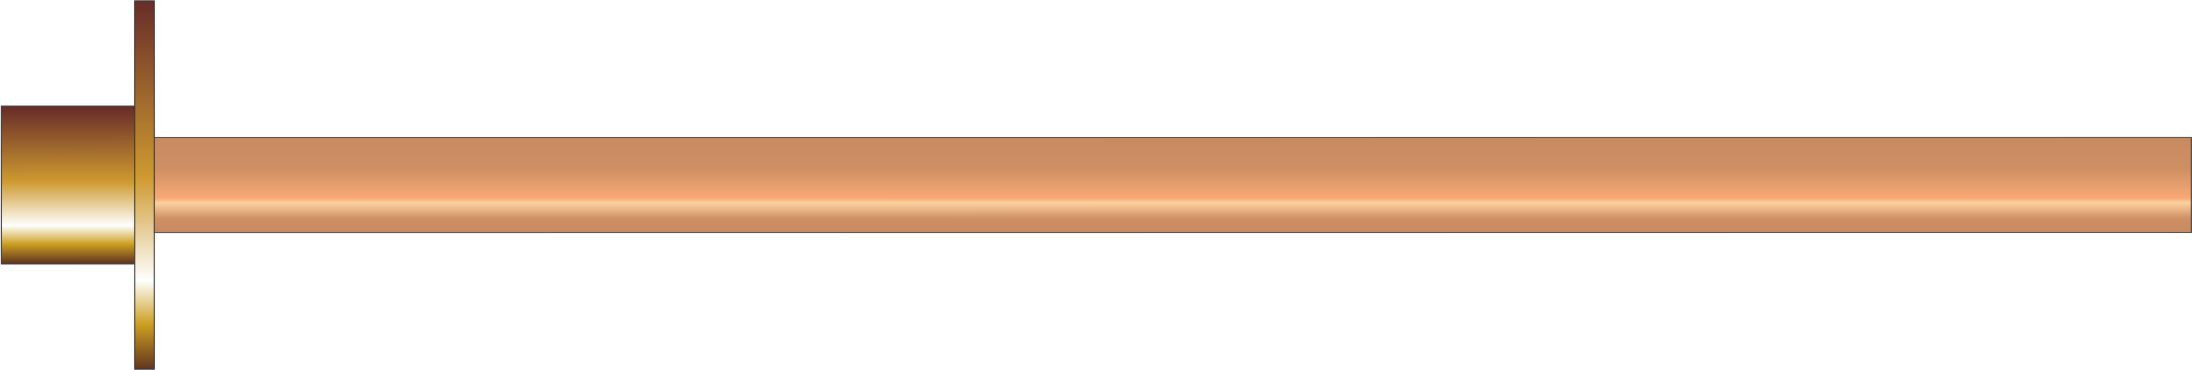 1/2 Tap Mounting Plate c/w Copper Tube 350mm